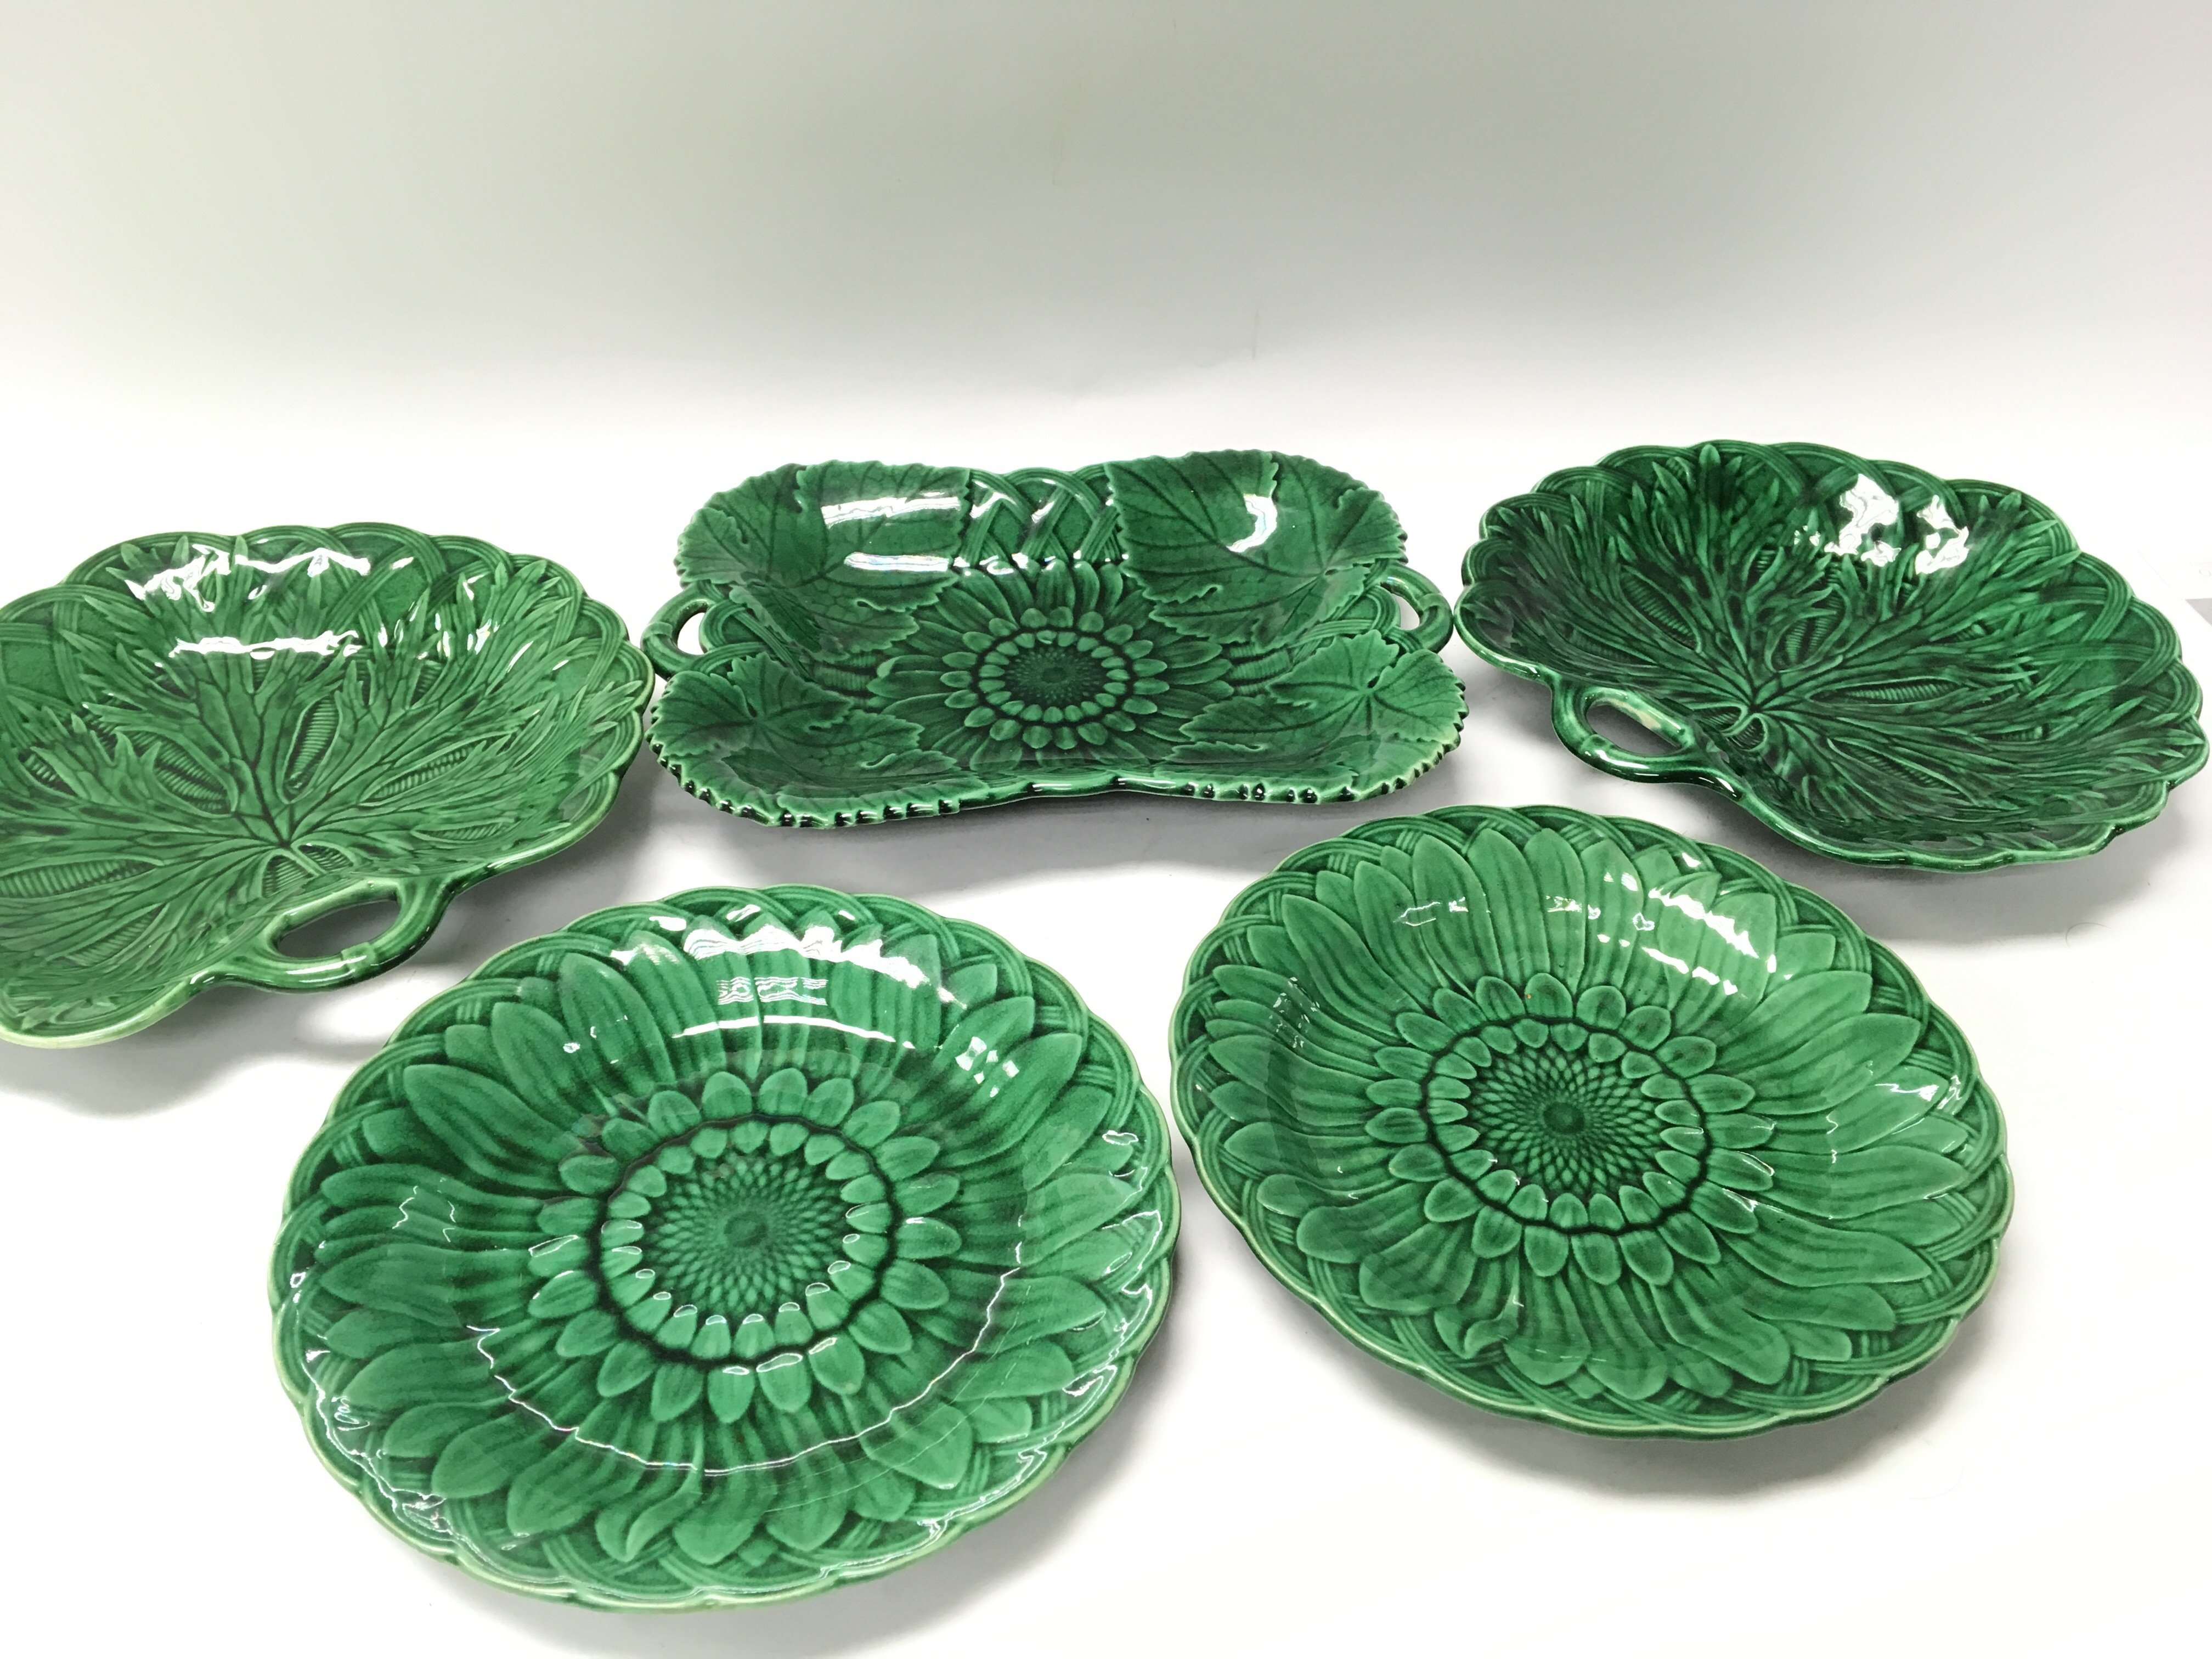 Lot 718 - Five Victorian Wedgwood Majolica plates with shape